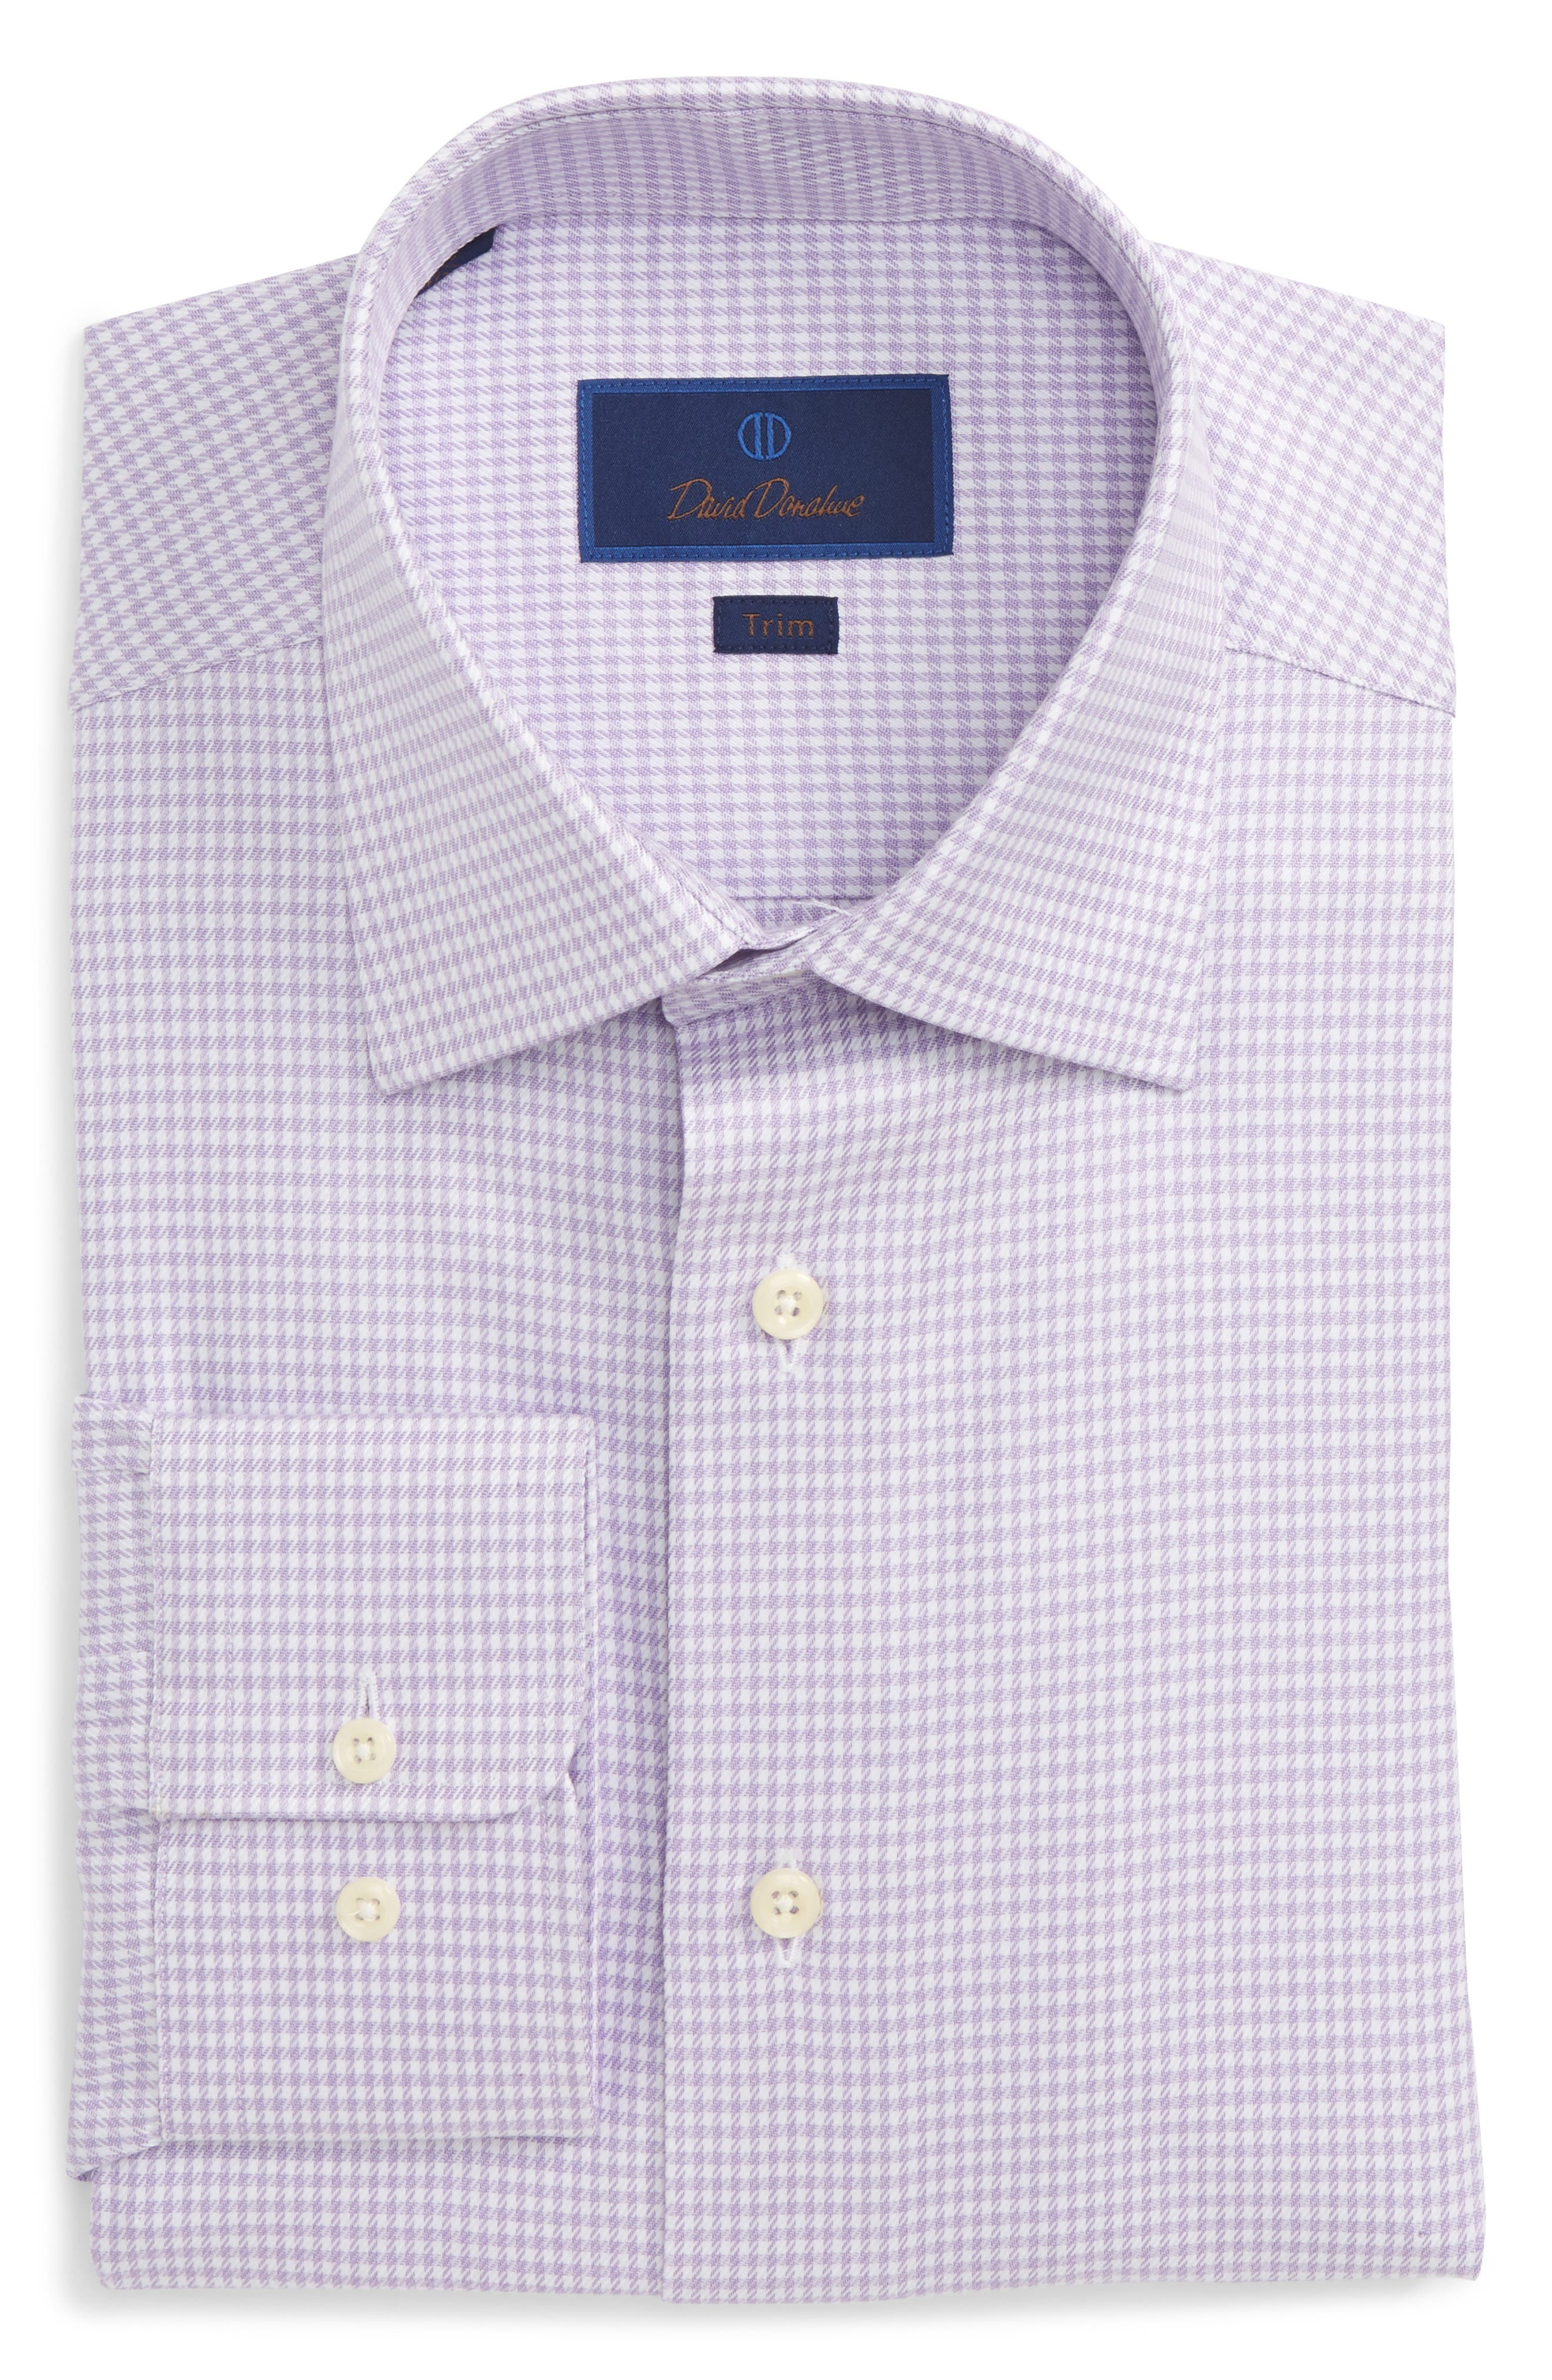 Alternate Image 1 Selected - David Donahue Trim Fit Houndstooth Dress Shirt